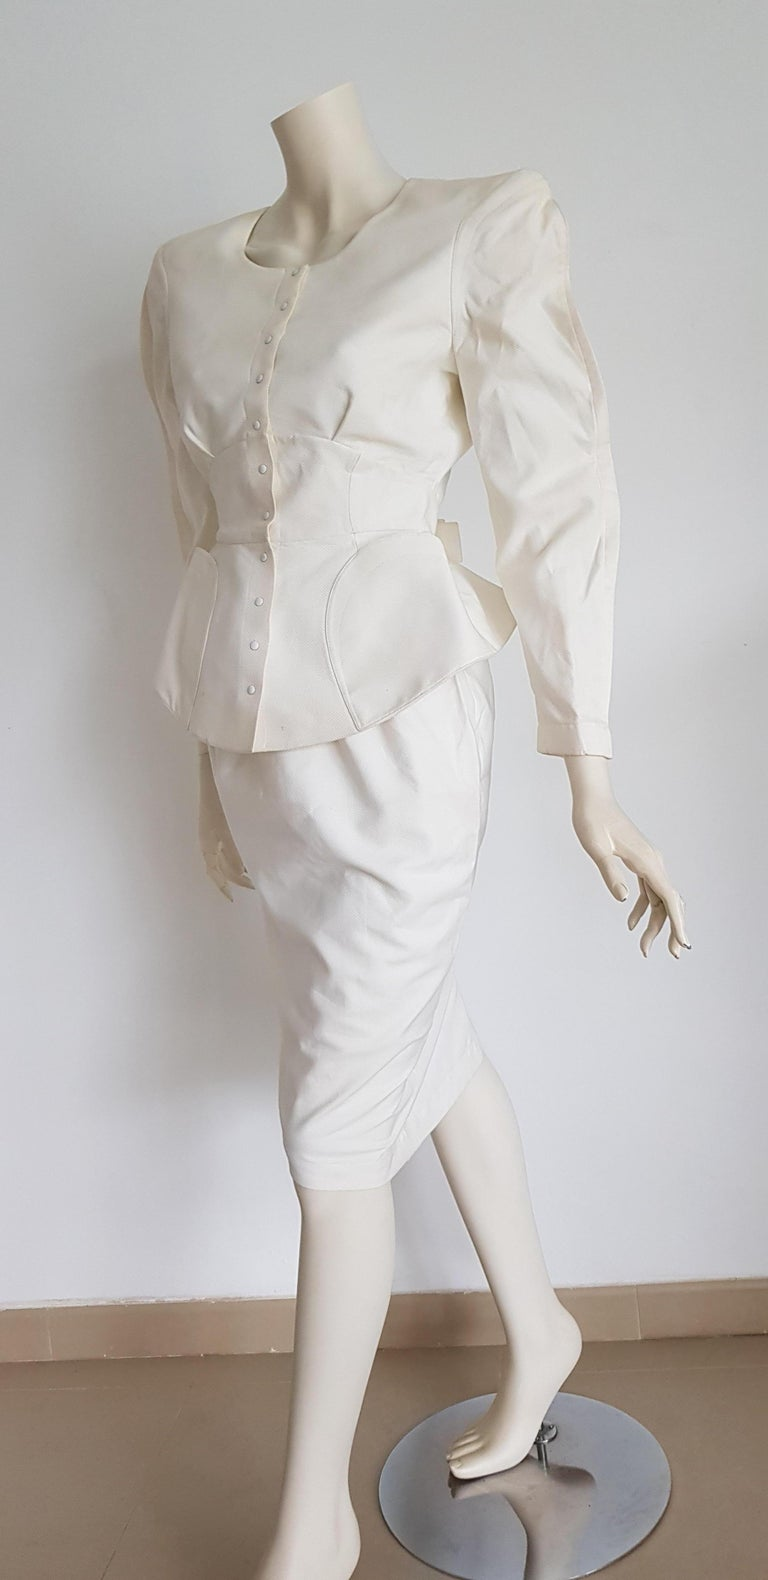 Thierry MUGLER jacket and skirt suit, piquet fabric, bow on the back - Unworn, New.   SIZE: equivalent to about Small / Medium, please review approx measurements as follows in cm.  JACKET: lenght 54, chest underarm to underarm 50, bust circumference